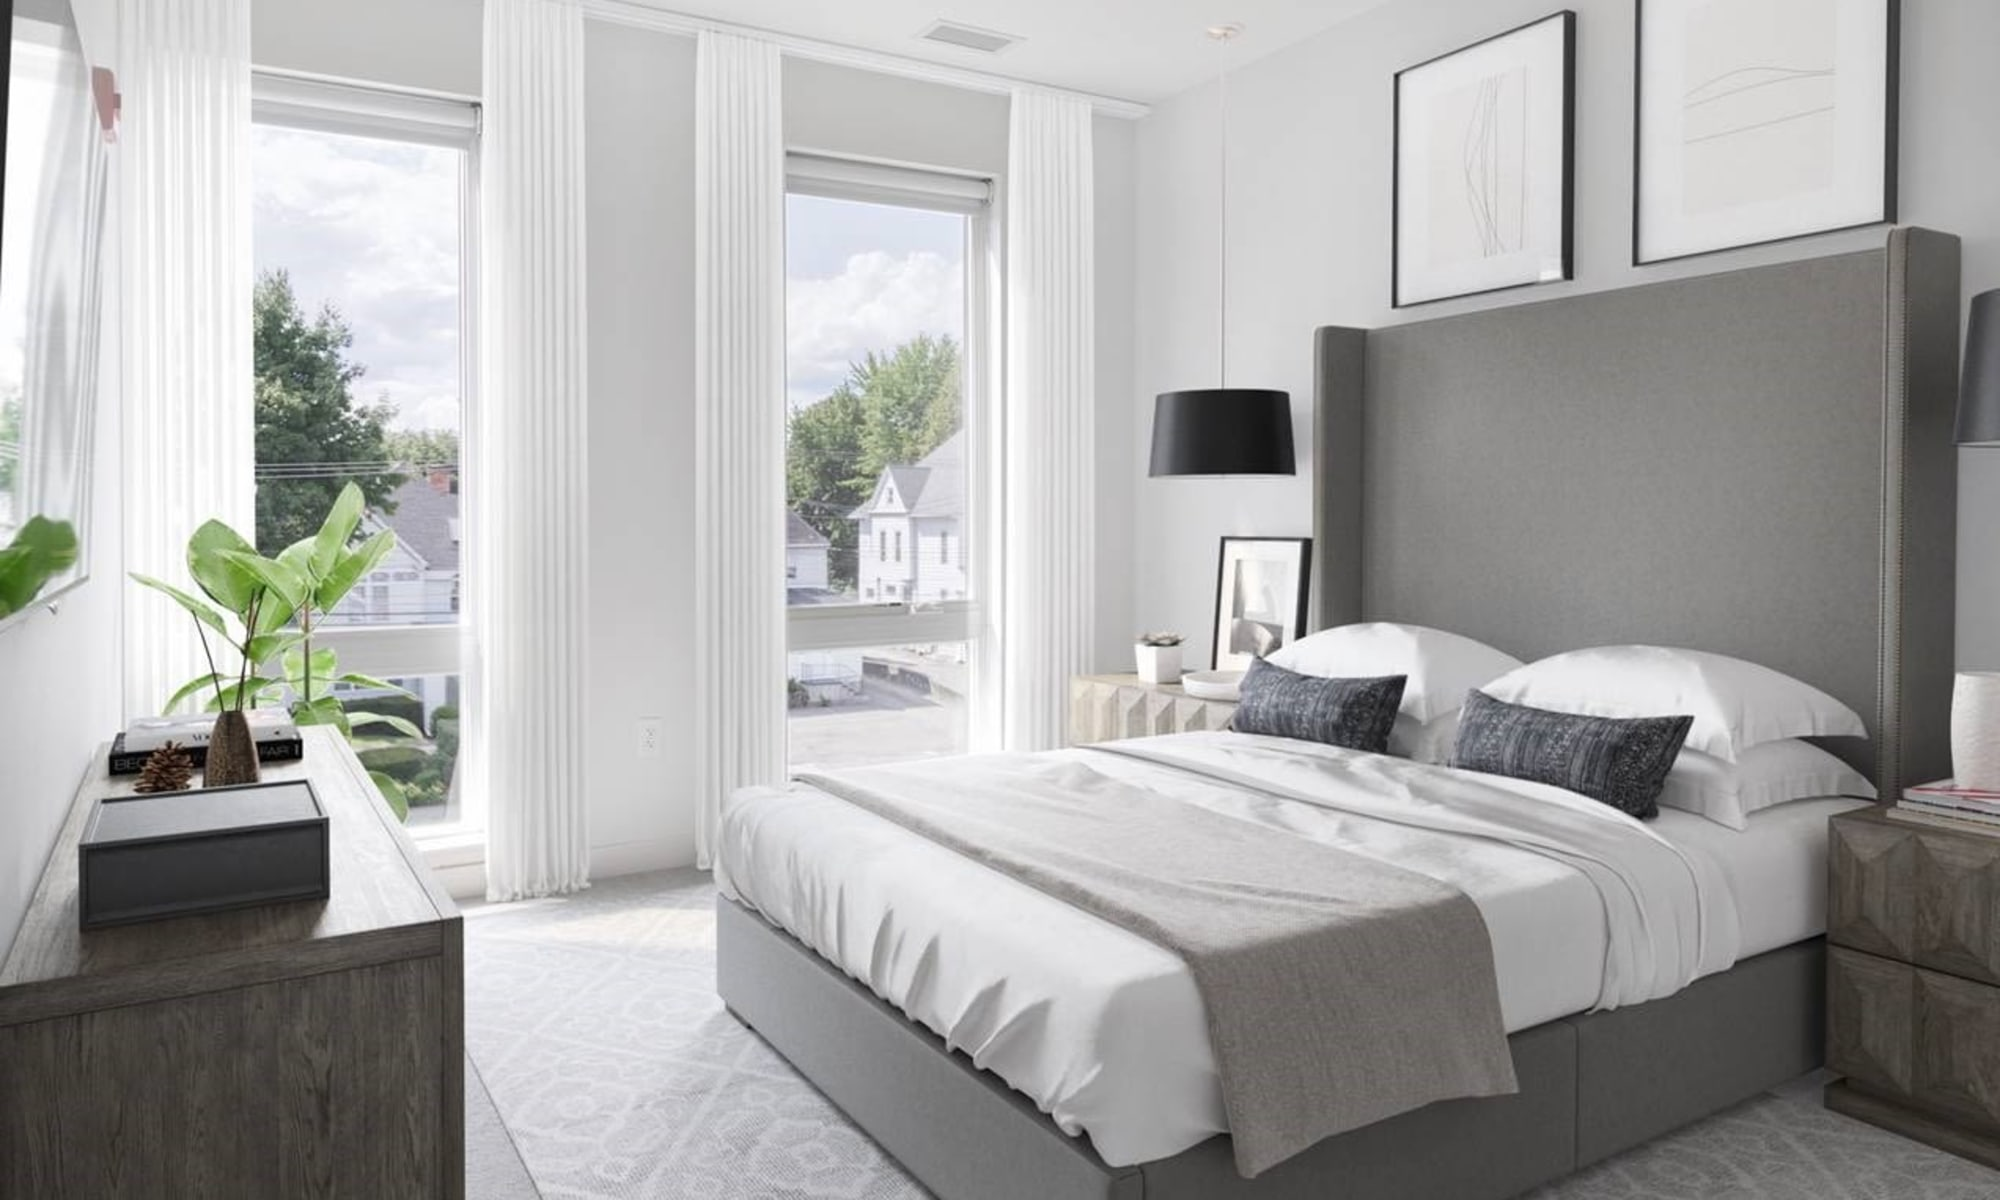 Bedroom at 50 Front Luxury Apartments in Binghamton, NY